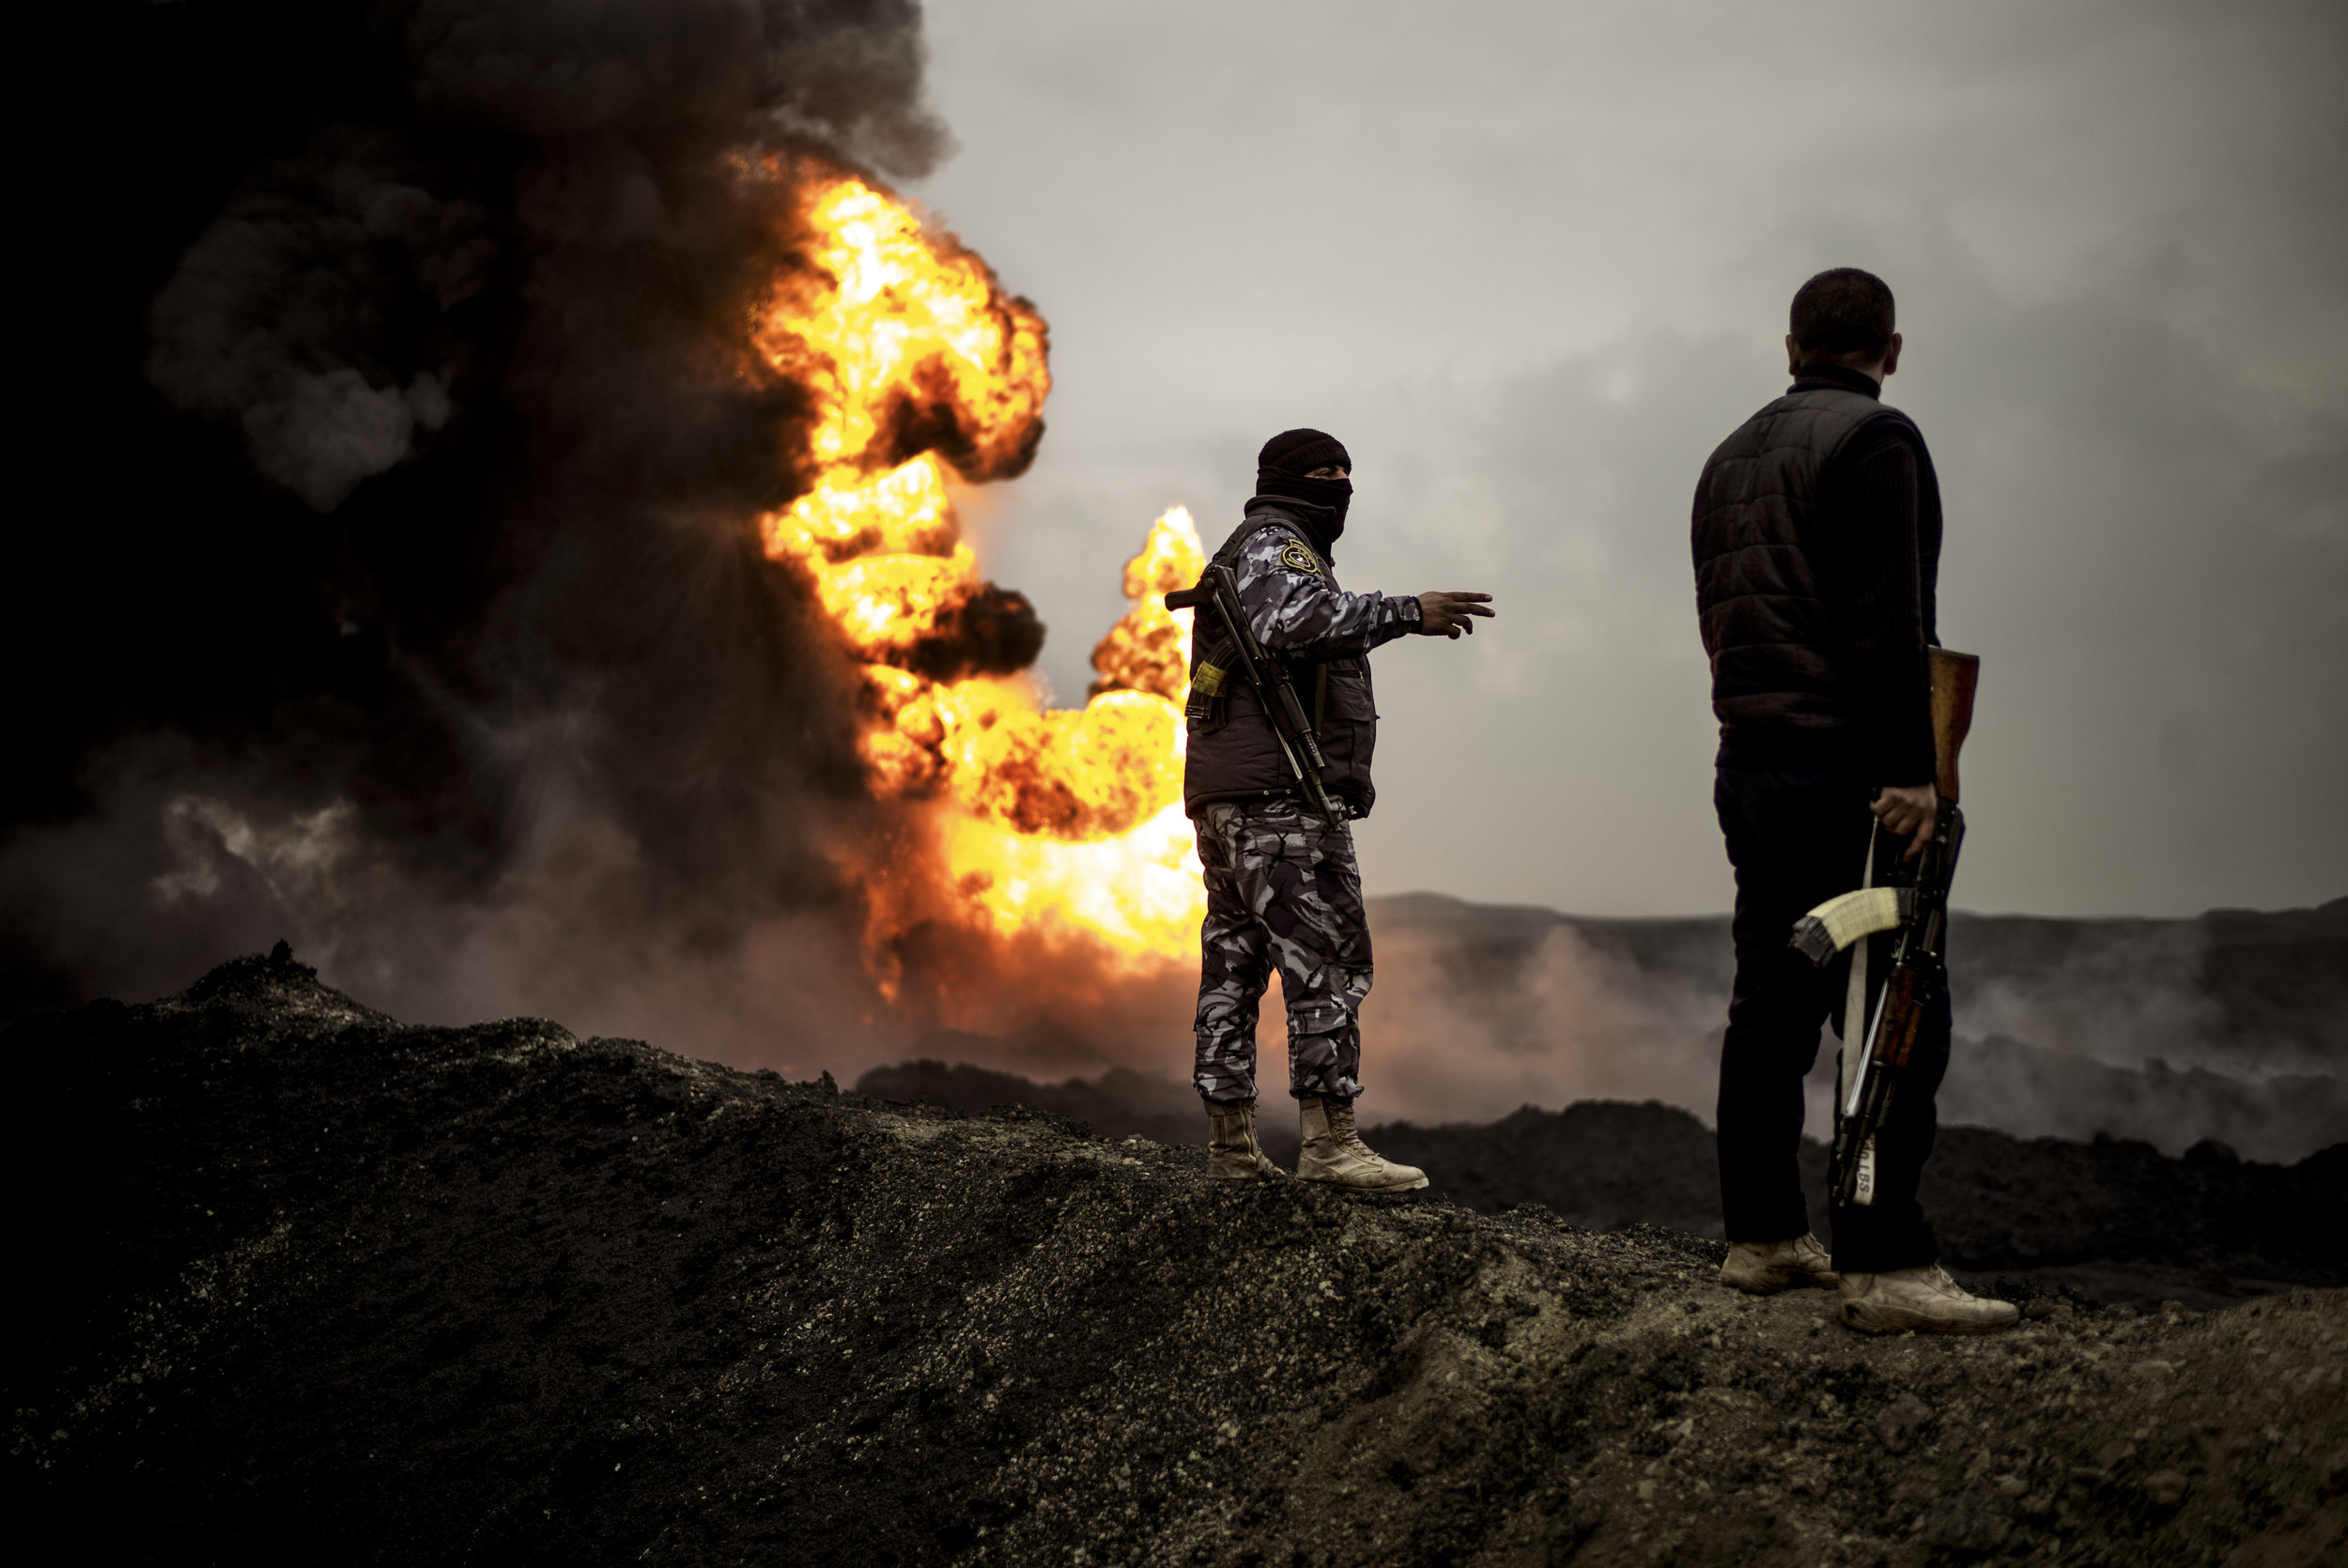 When ISIS retreated from Qayyarah, they set fire to 18 of the city's oil wells. It's taken the firefighter ten months to extinguish the flames.